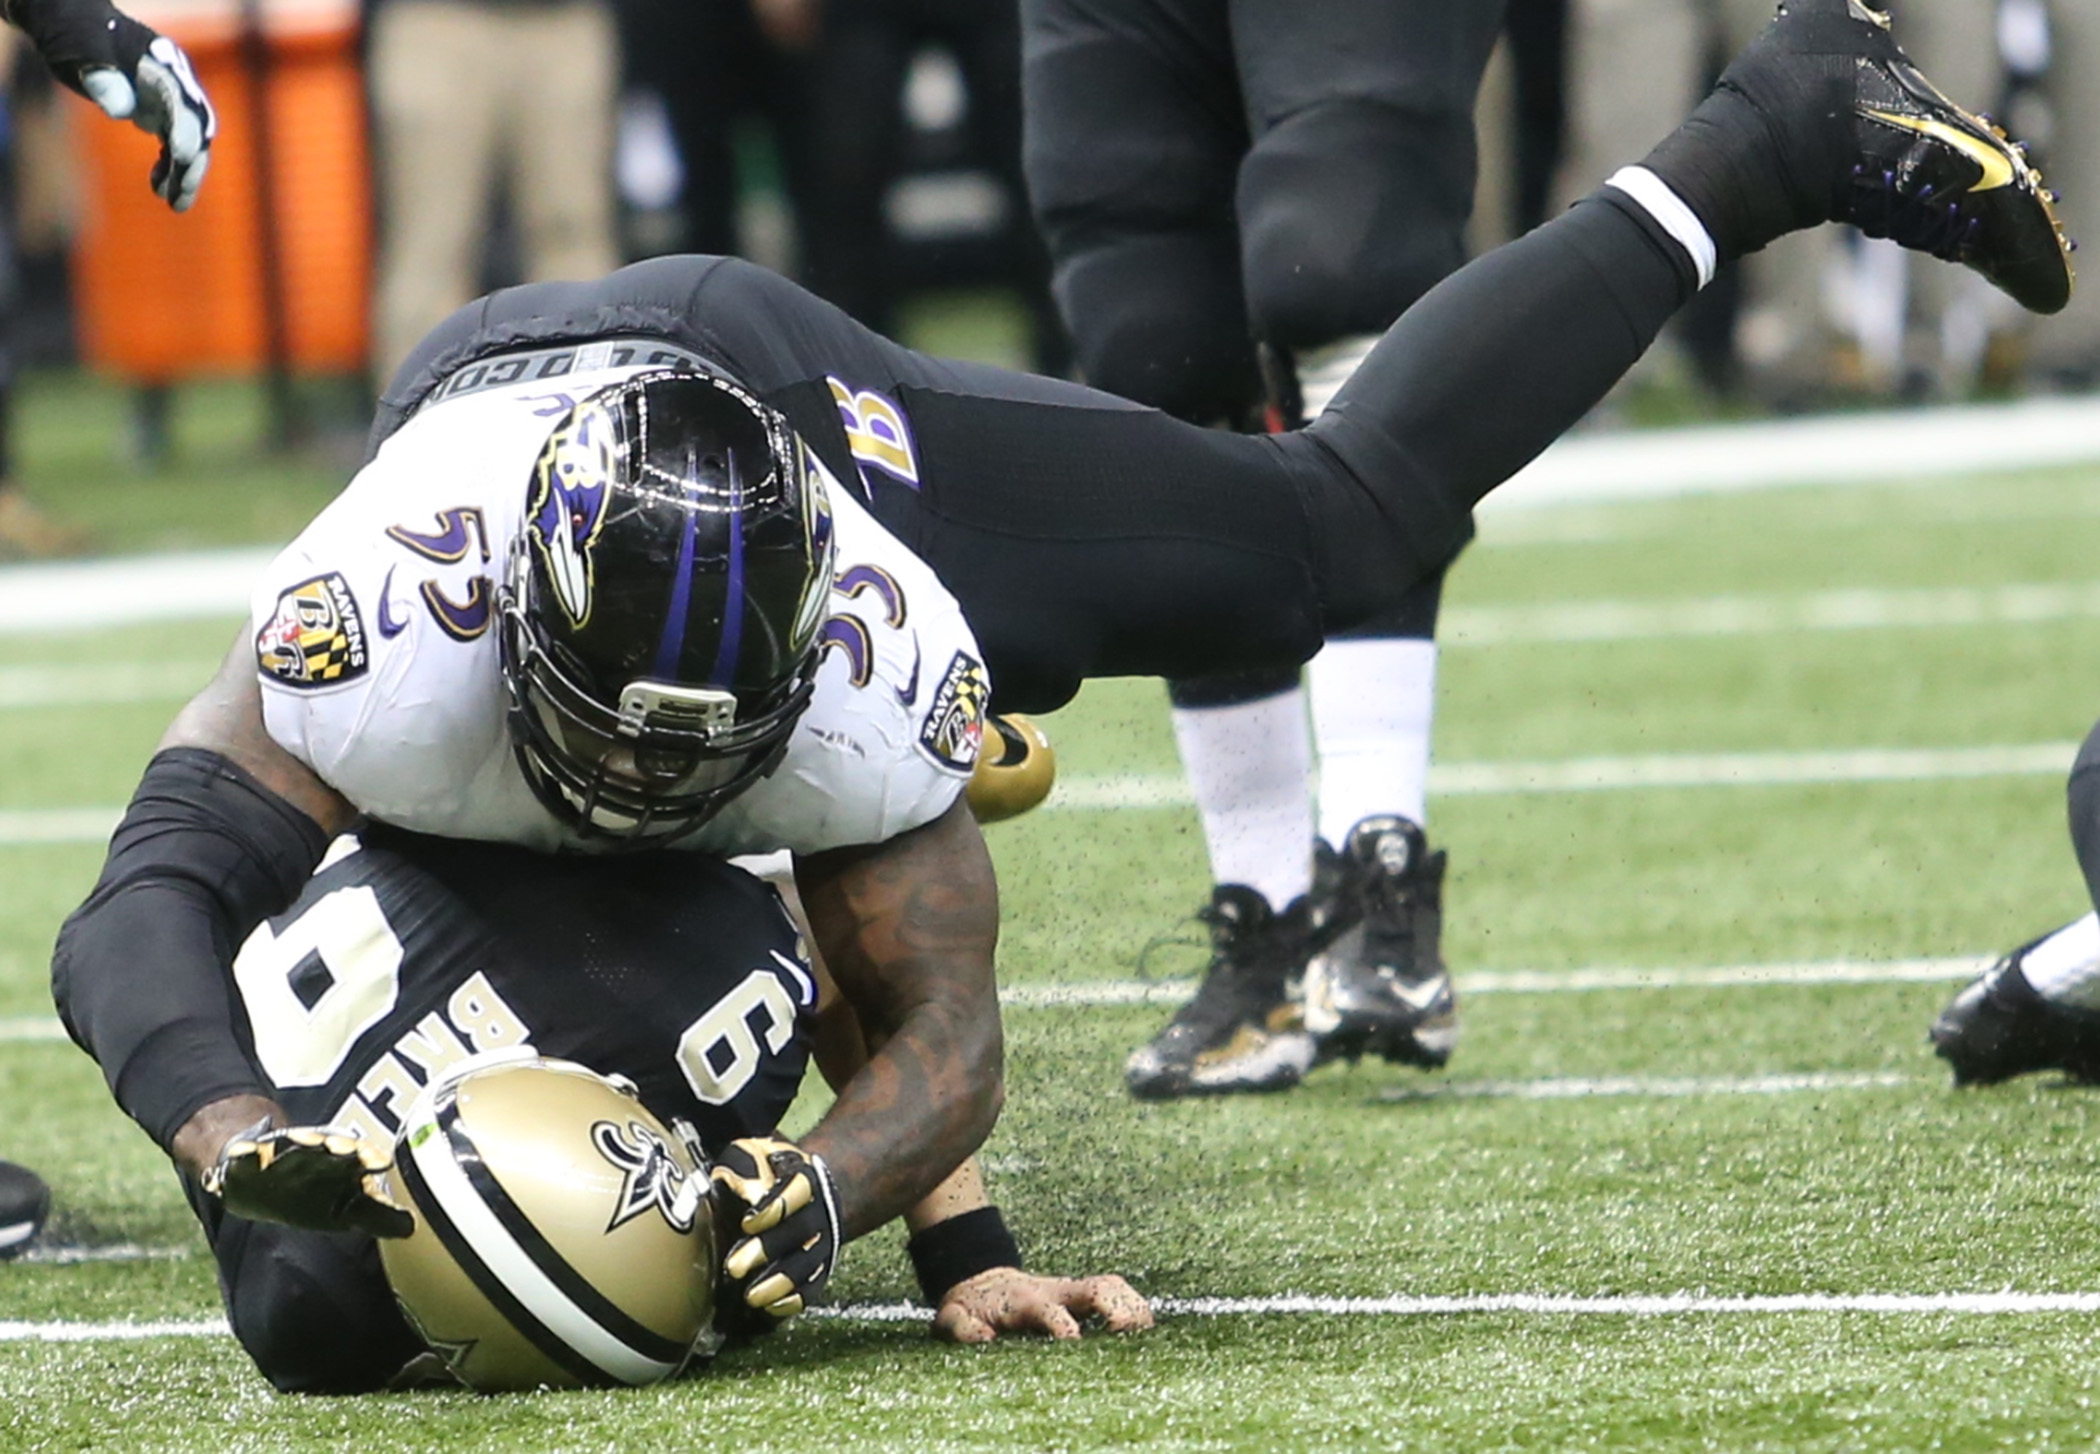 New Orleans Saints quarterback Drew Brees (9) is driven into the ground on a scramble by Baltimore Ravens outside linebacker Terrell Suggs (55) during the game between the Baltimore Ravens and New Orleans Saints at the Superdome on Monday, November 24, 2014. (Michael DeMocker, Nola.com / The Times-Picayune)